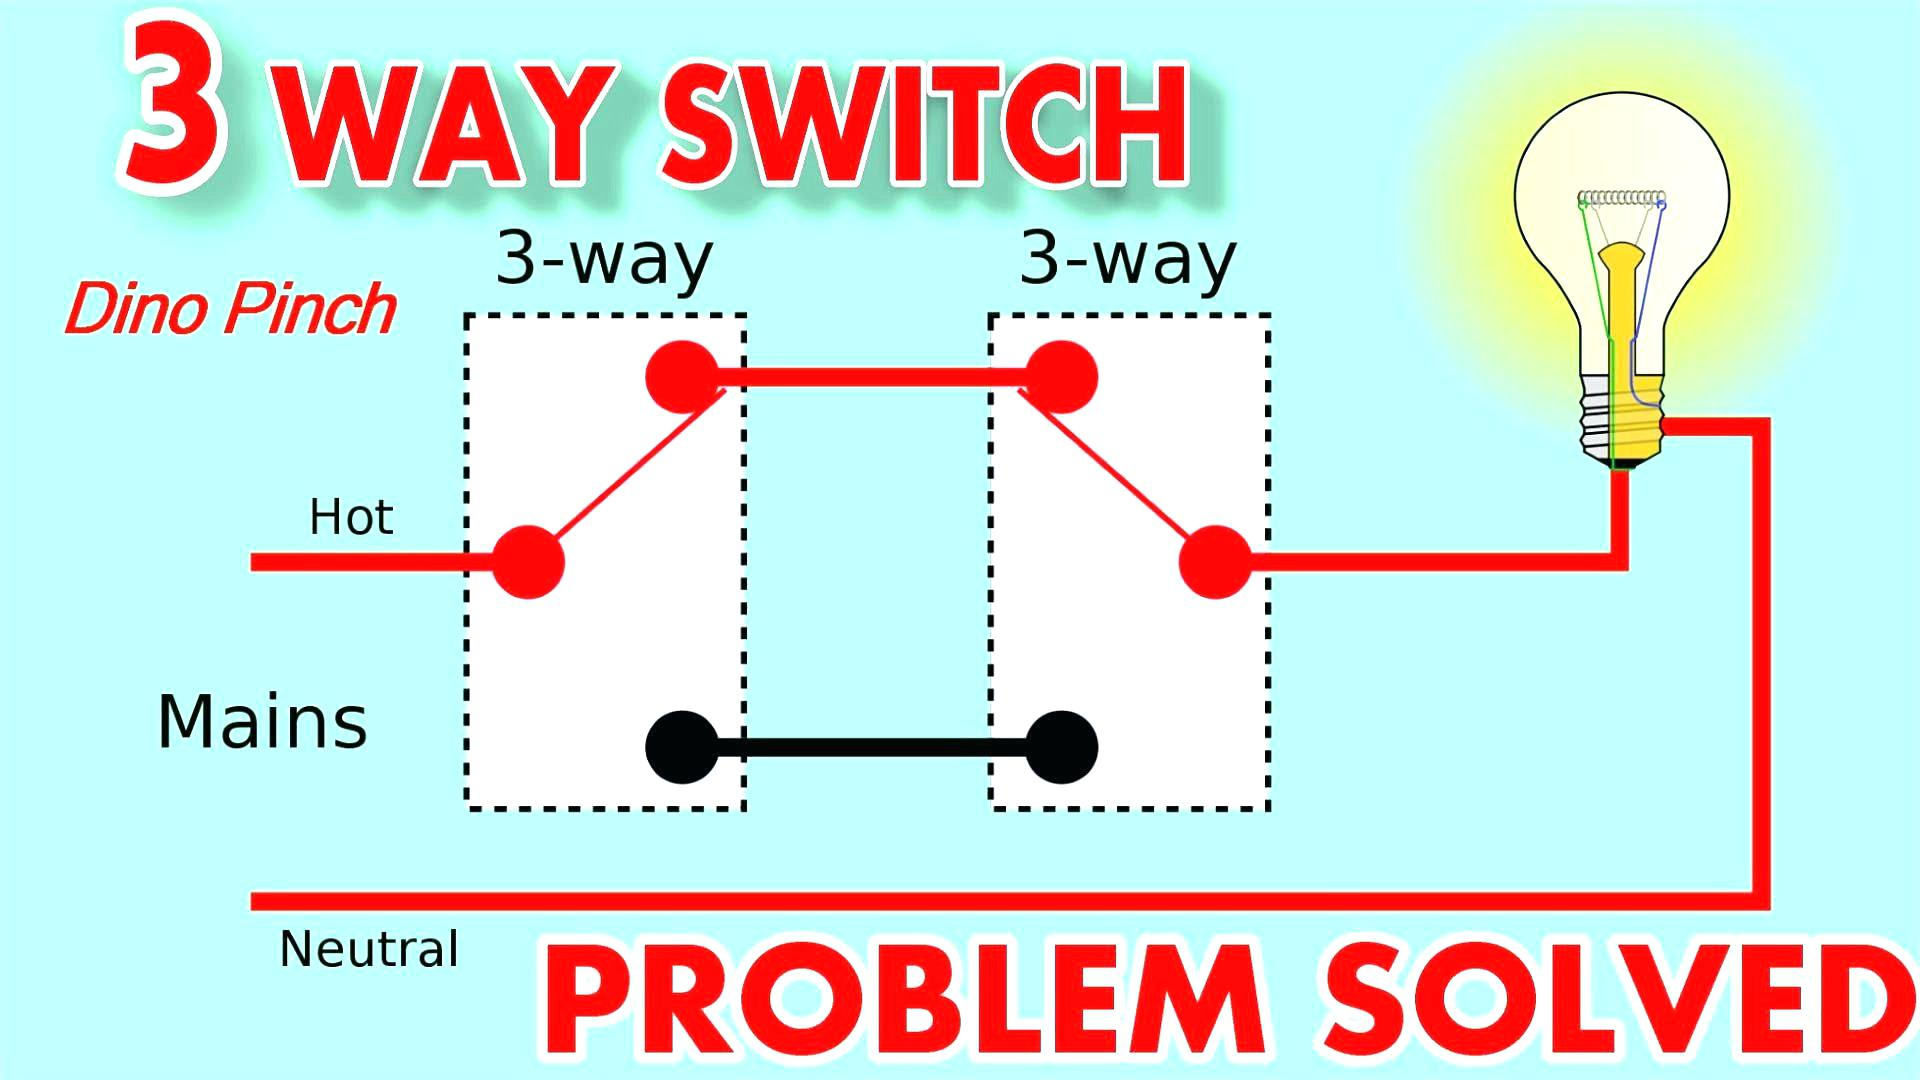 Lutron 3 Way Dimmer Switch Wiring Diagram - Lorestan - 3 Way Dimmer Switch Wiring Diagram